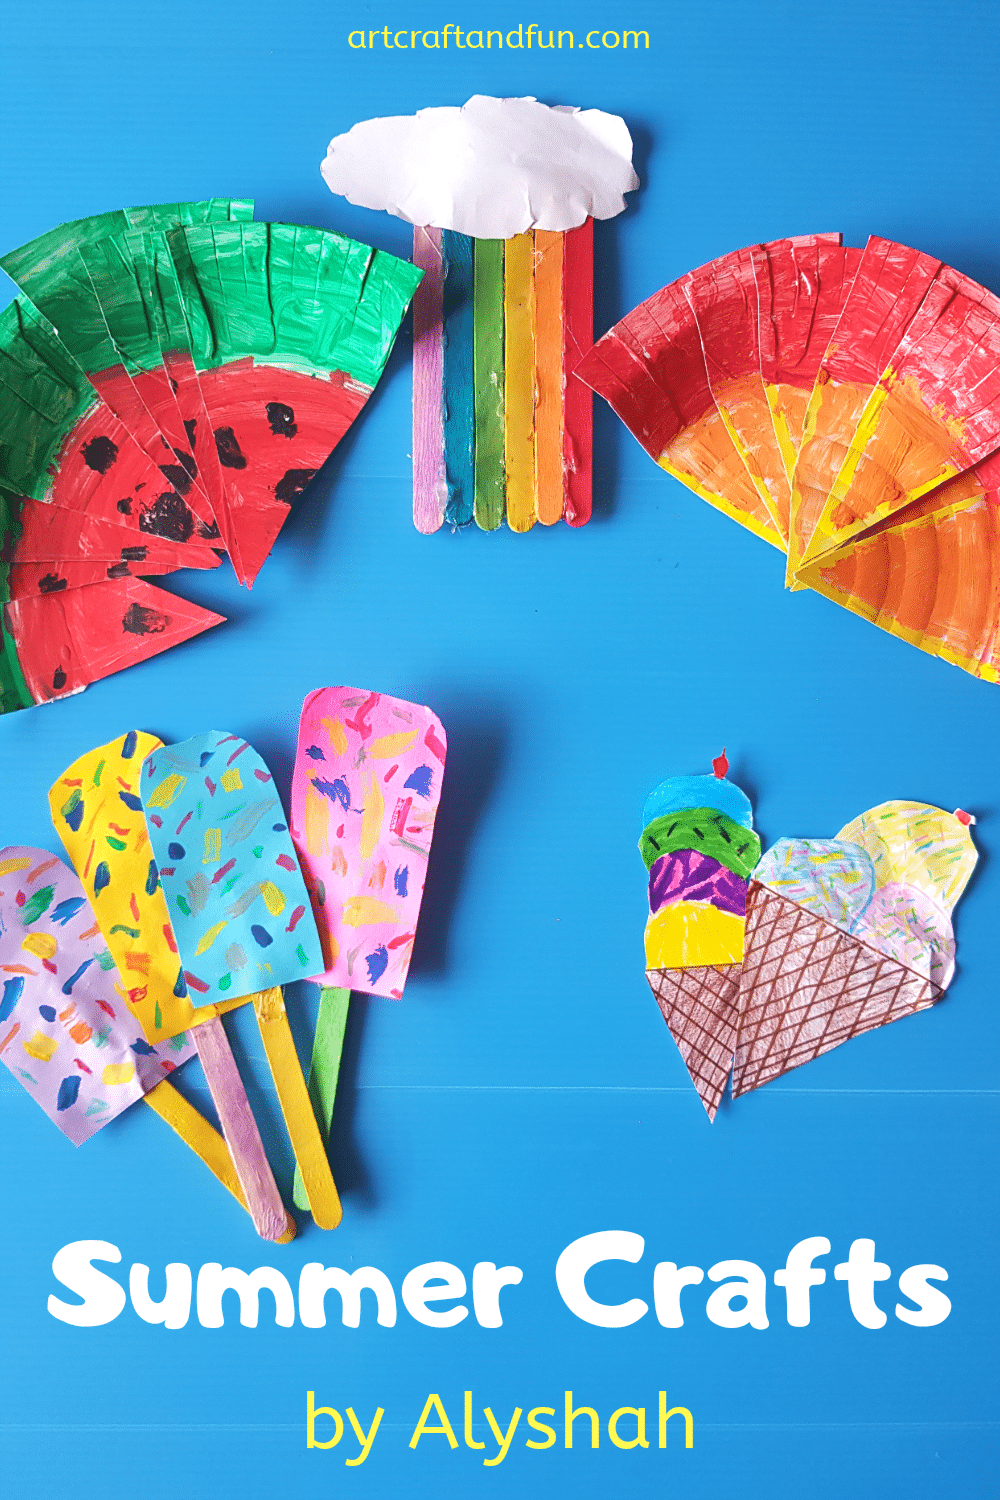 Make these super easy Summer Crafts with your kids today. #Summercrafts #paperplatecrafts #fruitcrafts #icecreamcraft